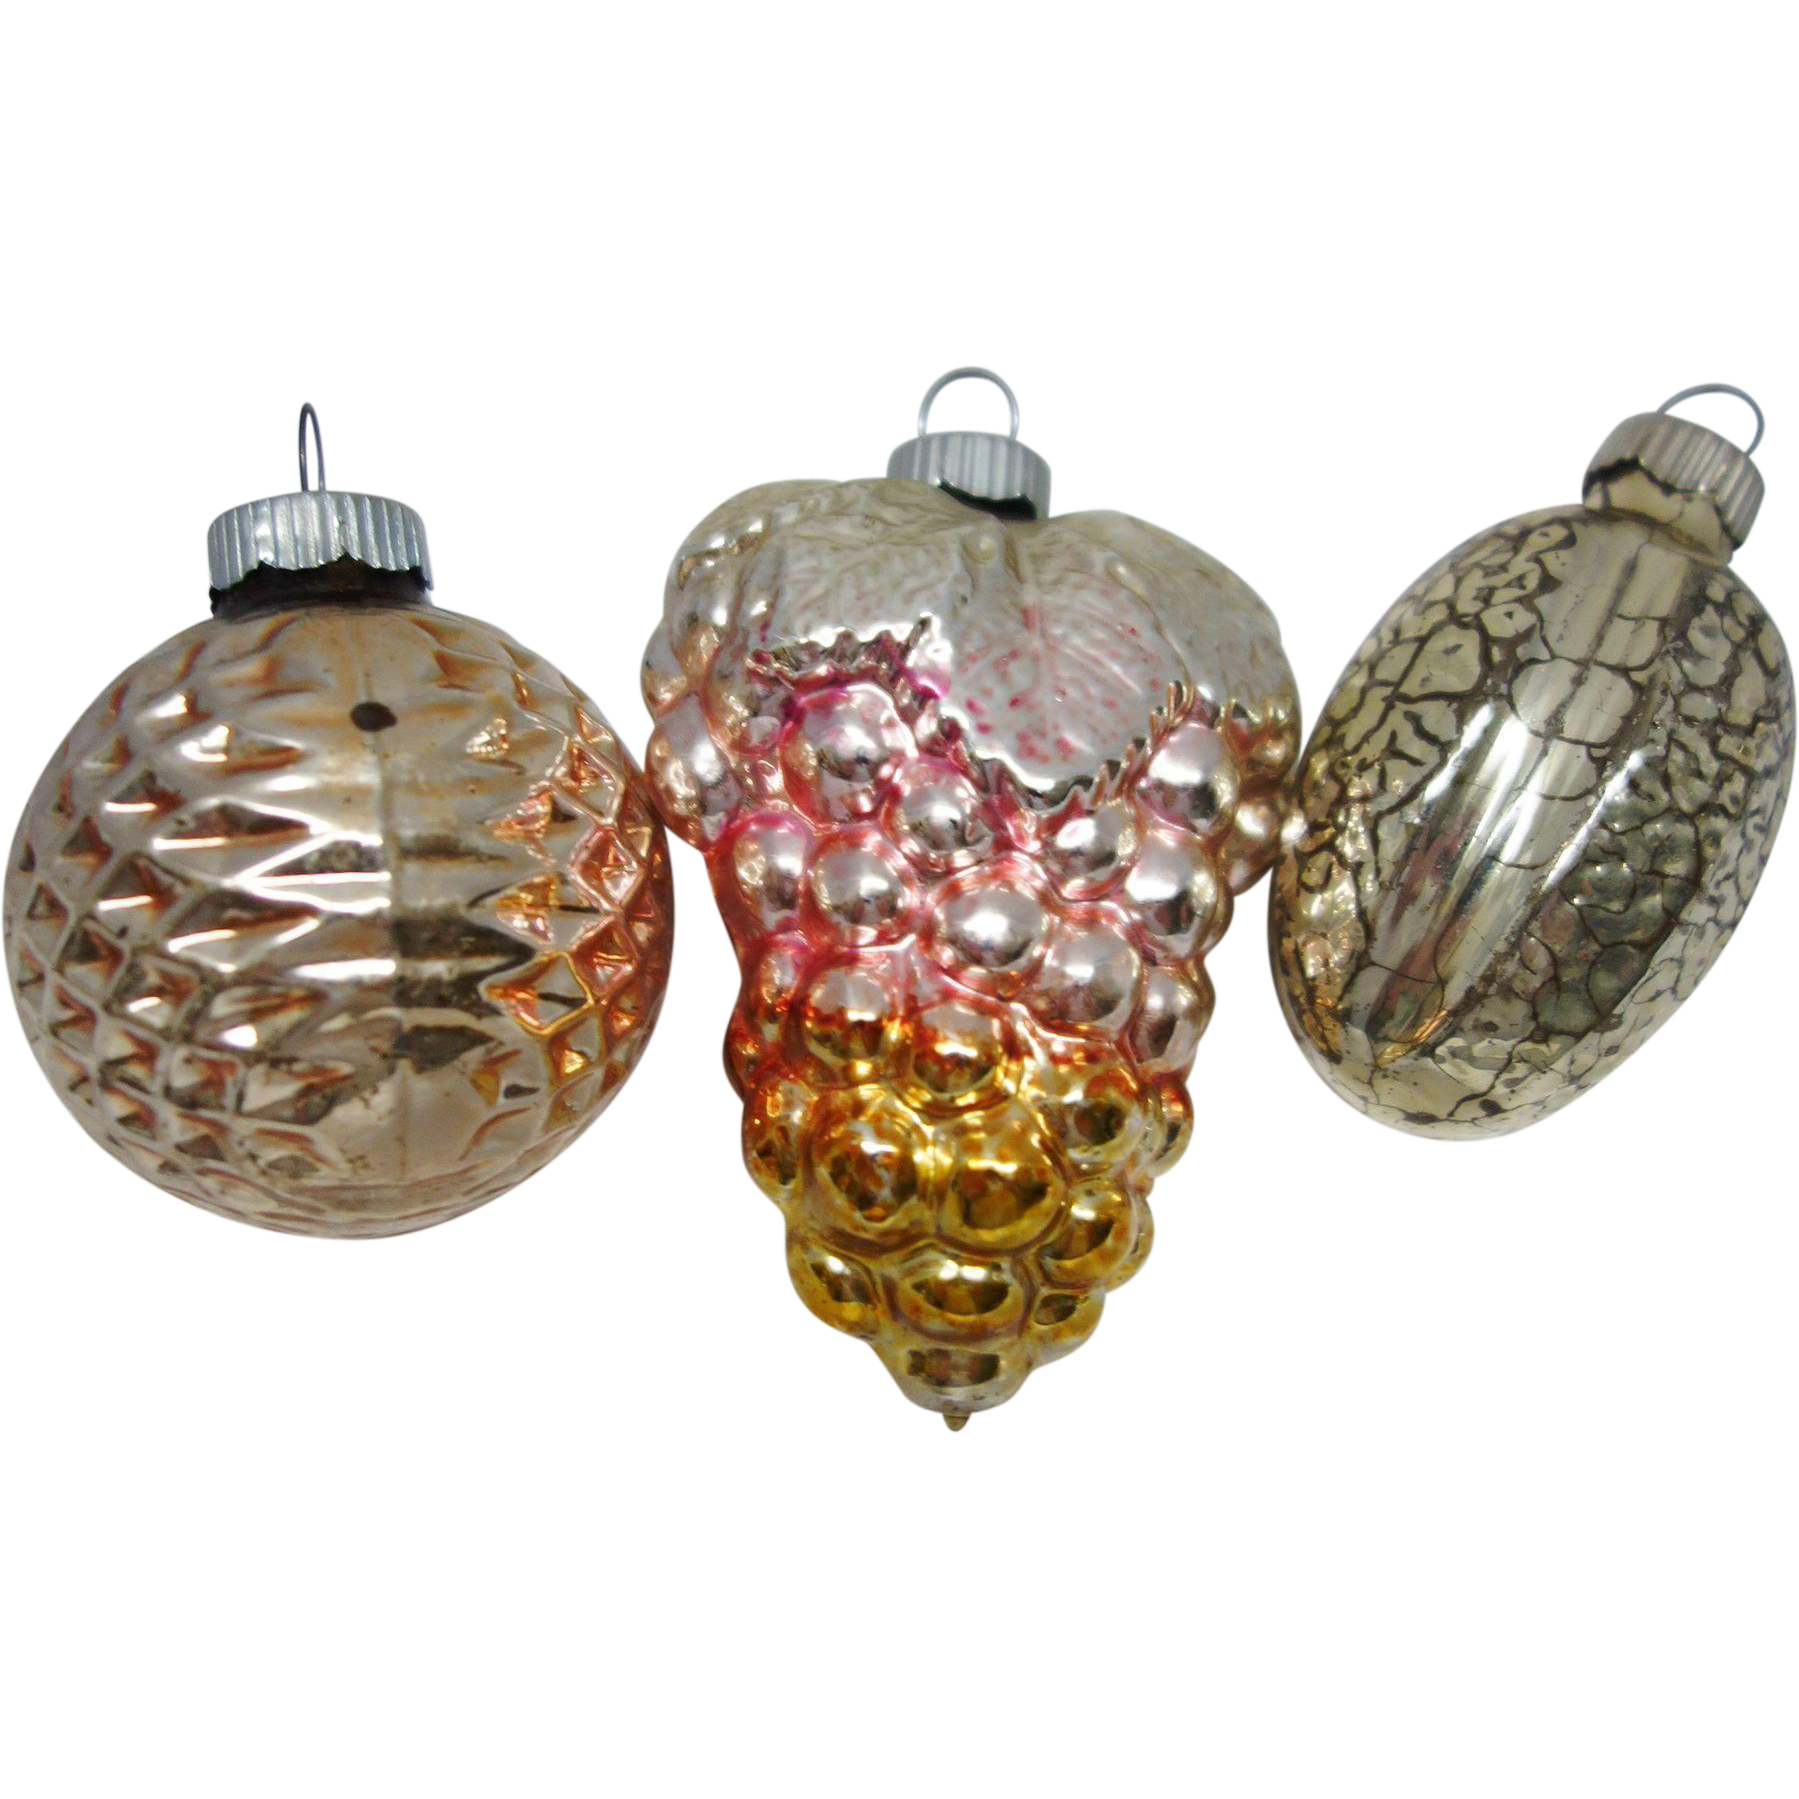 Three Vintage Shiny Brite Figural Glass Christmas Ornaments